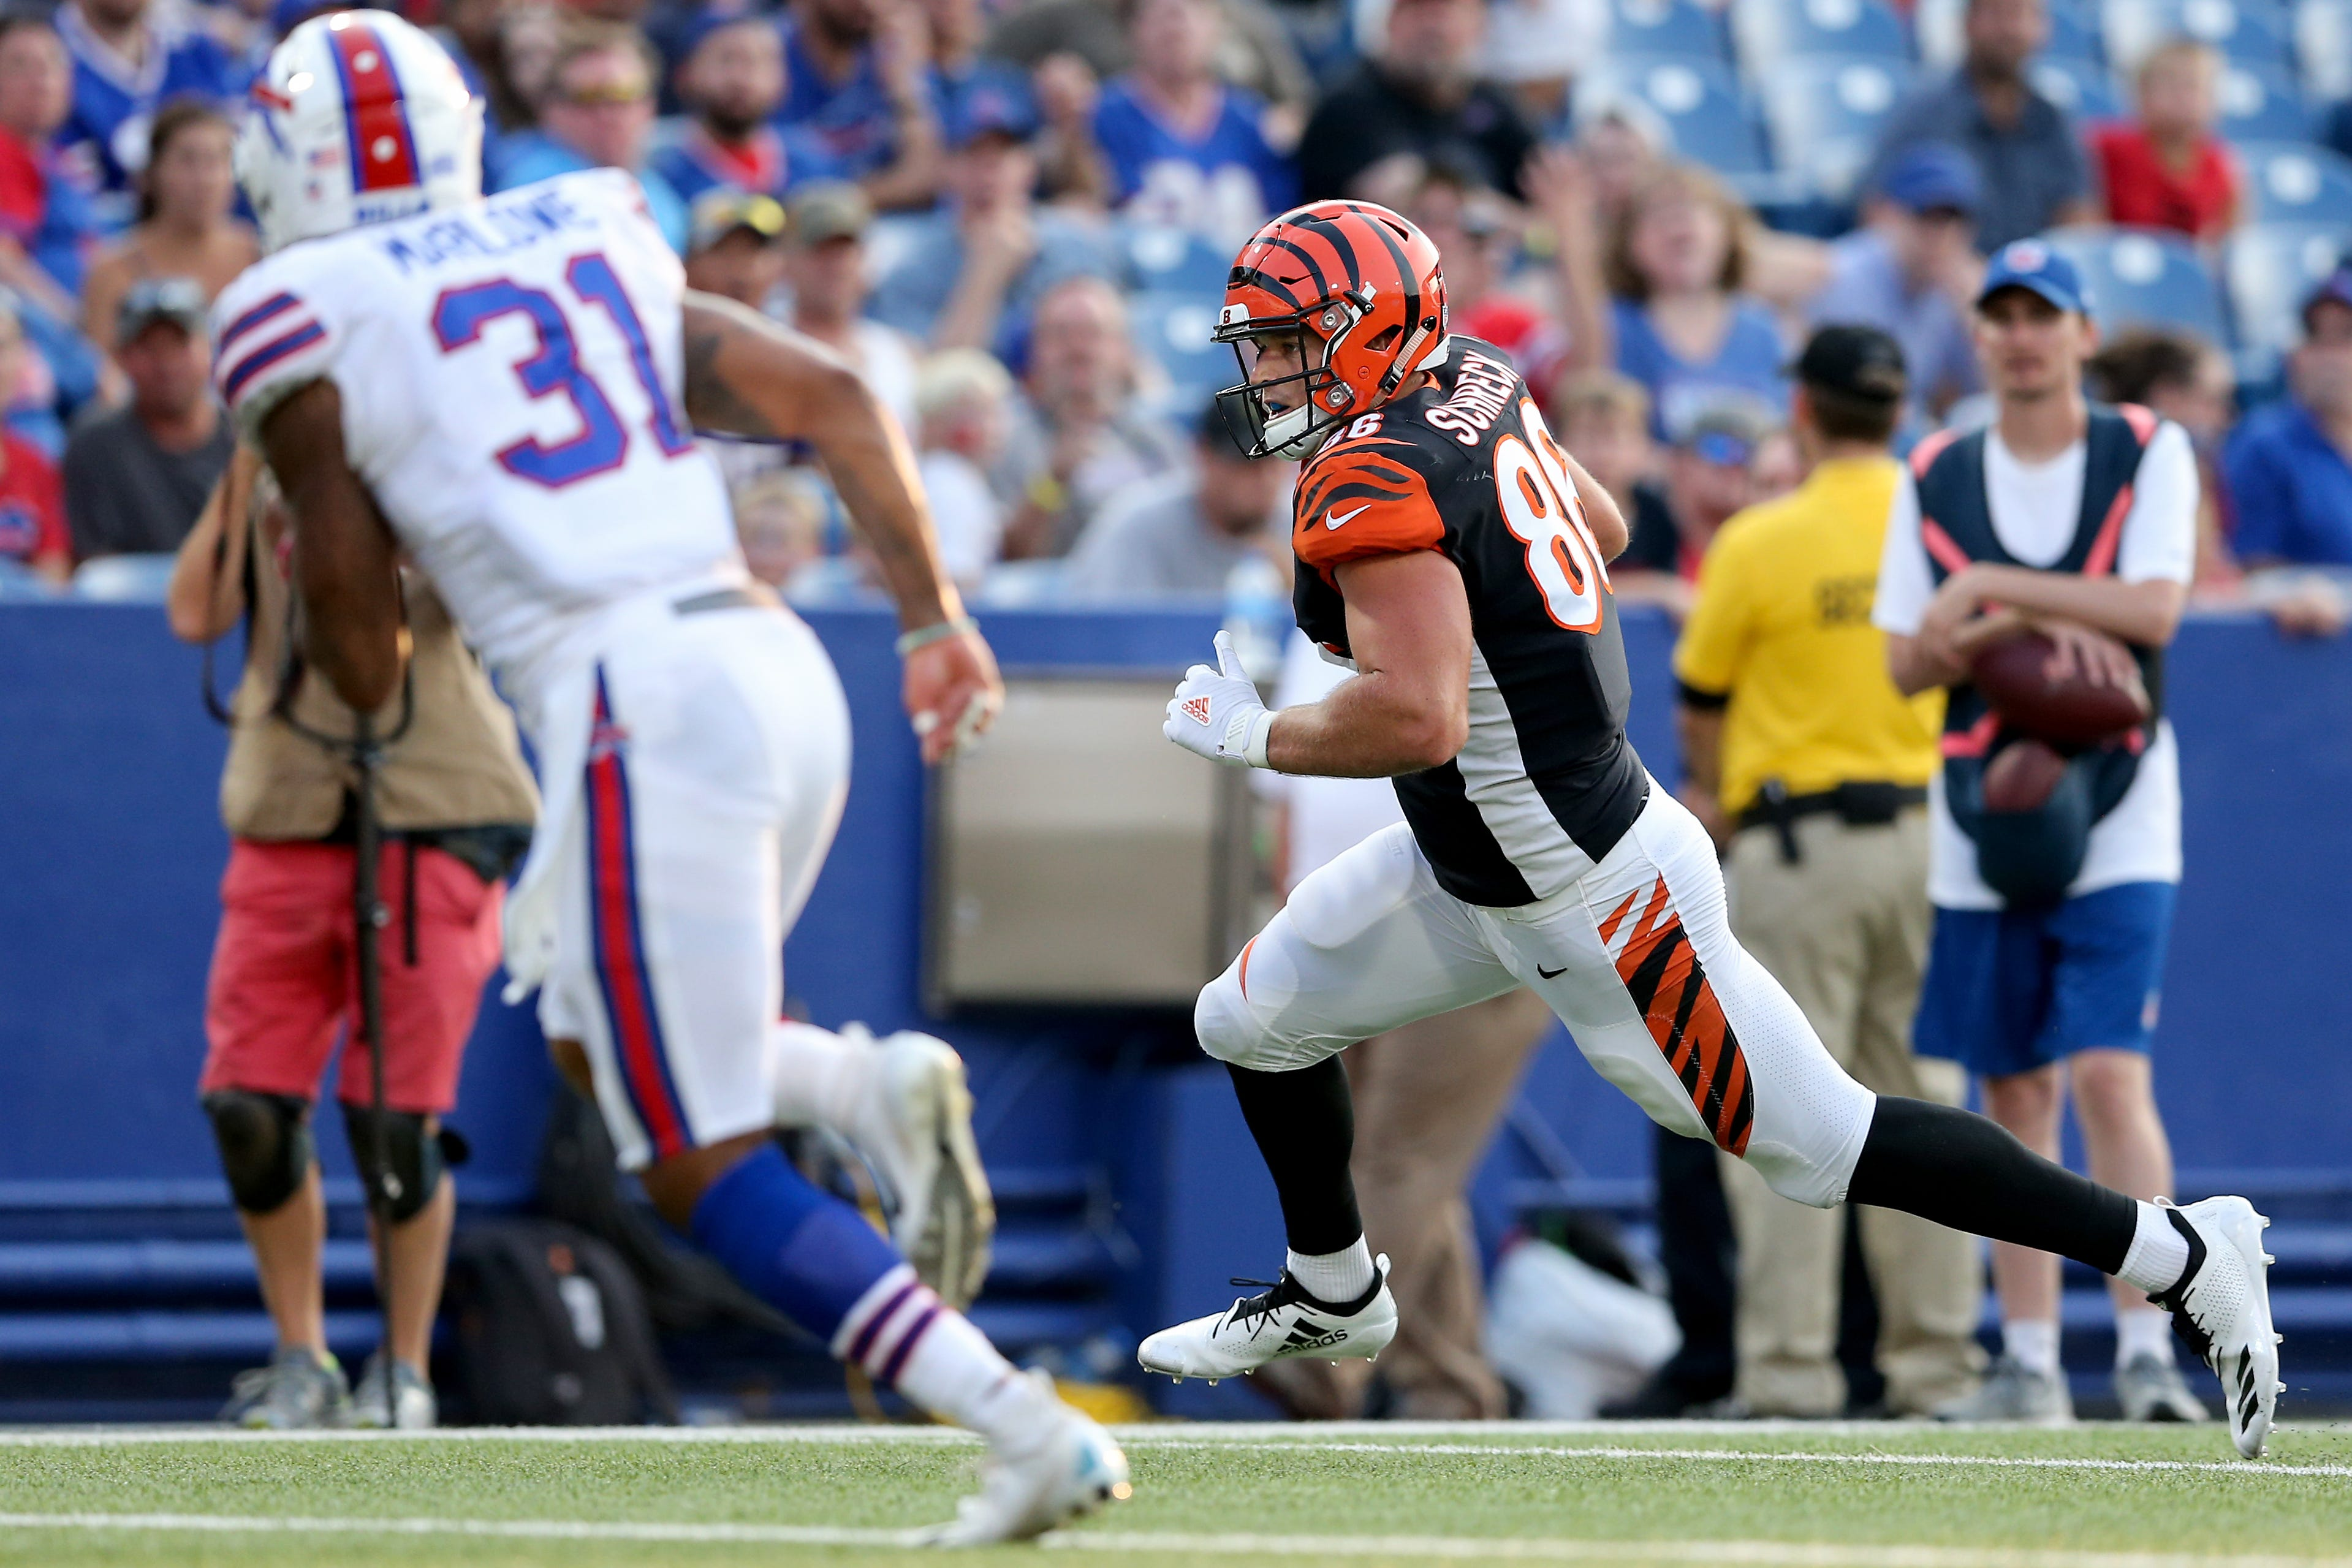 Cincinnati Bengals tight end Mason Schreck (86) runs downfield after a catch in the third quarter during the Week 3 NFL preseason game between the Cincinnati Bengals and the Buffalo Bills, Sunday, Aug. 26, 2018, at New Era Stadium in Orchard Park, New York.